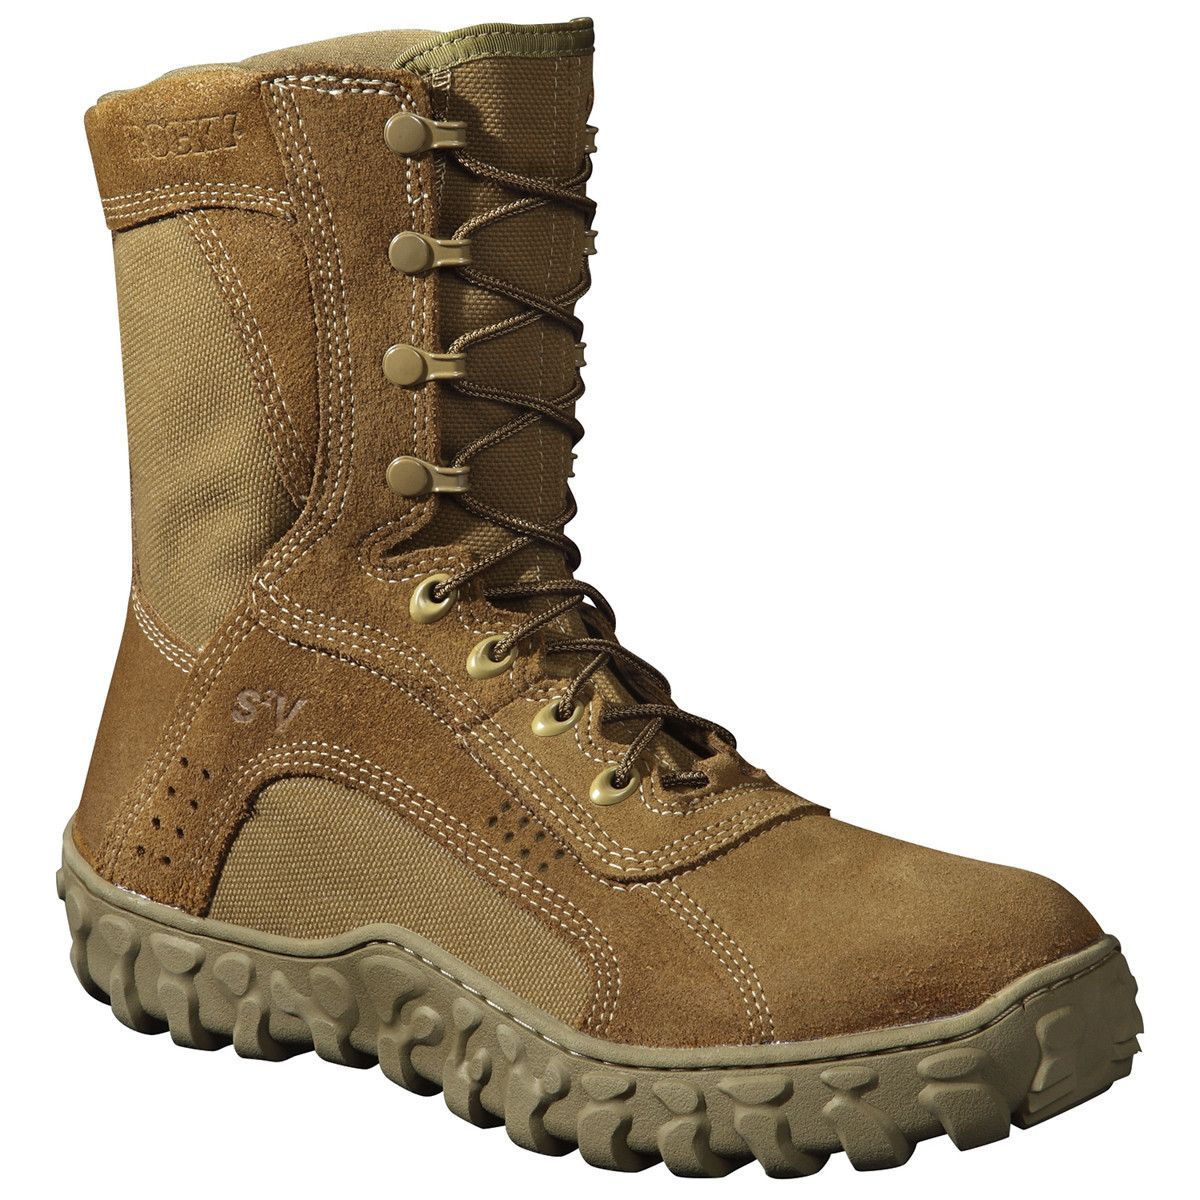 Rocky S2v Mens Coyote Brown Leather Steel Toe Tactical Military Boots Tactical Boots Duty Boots Boots